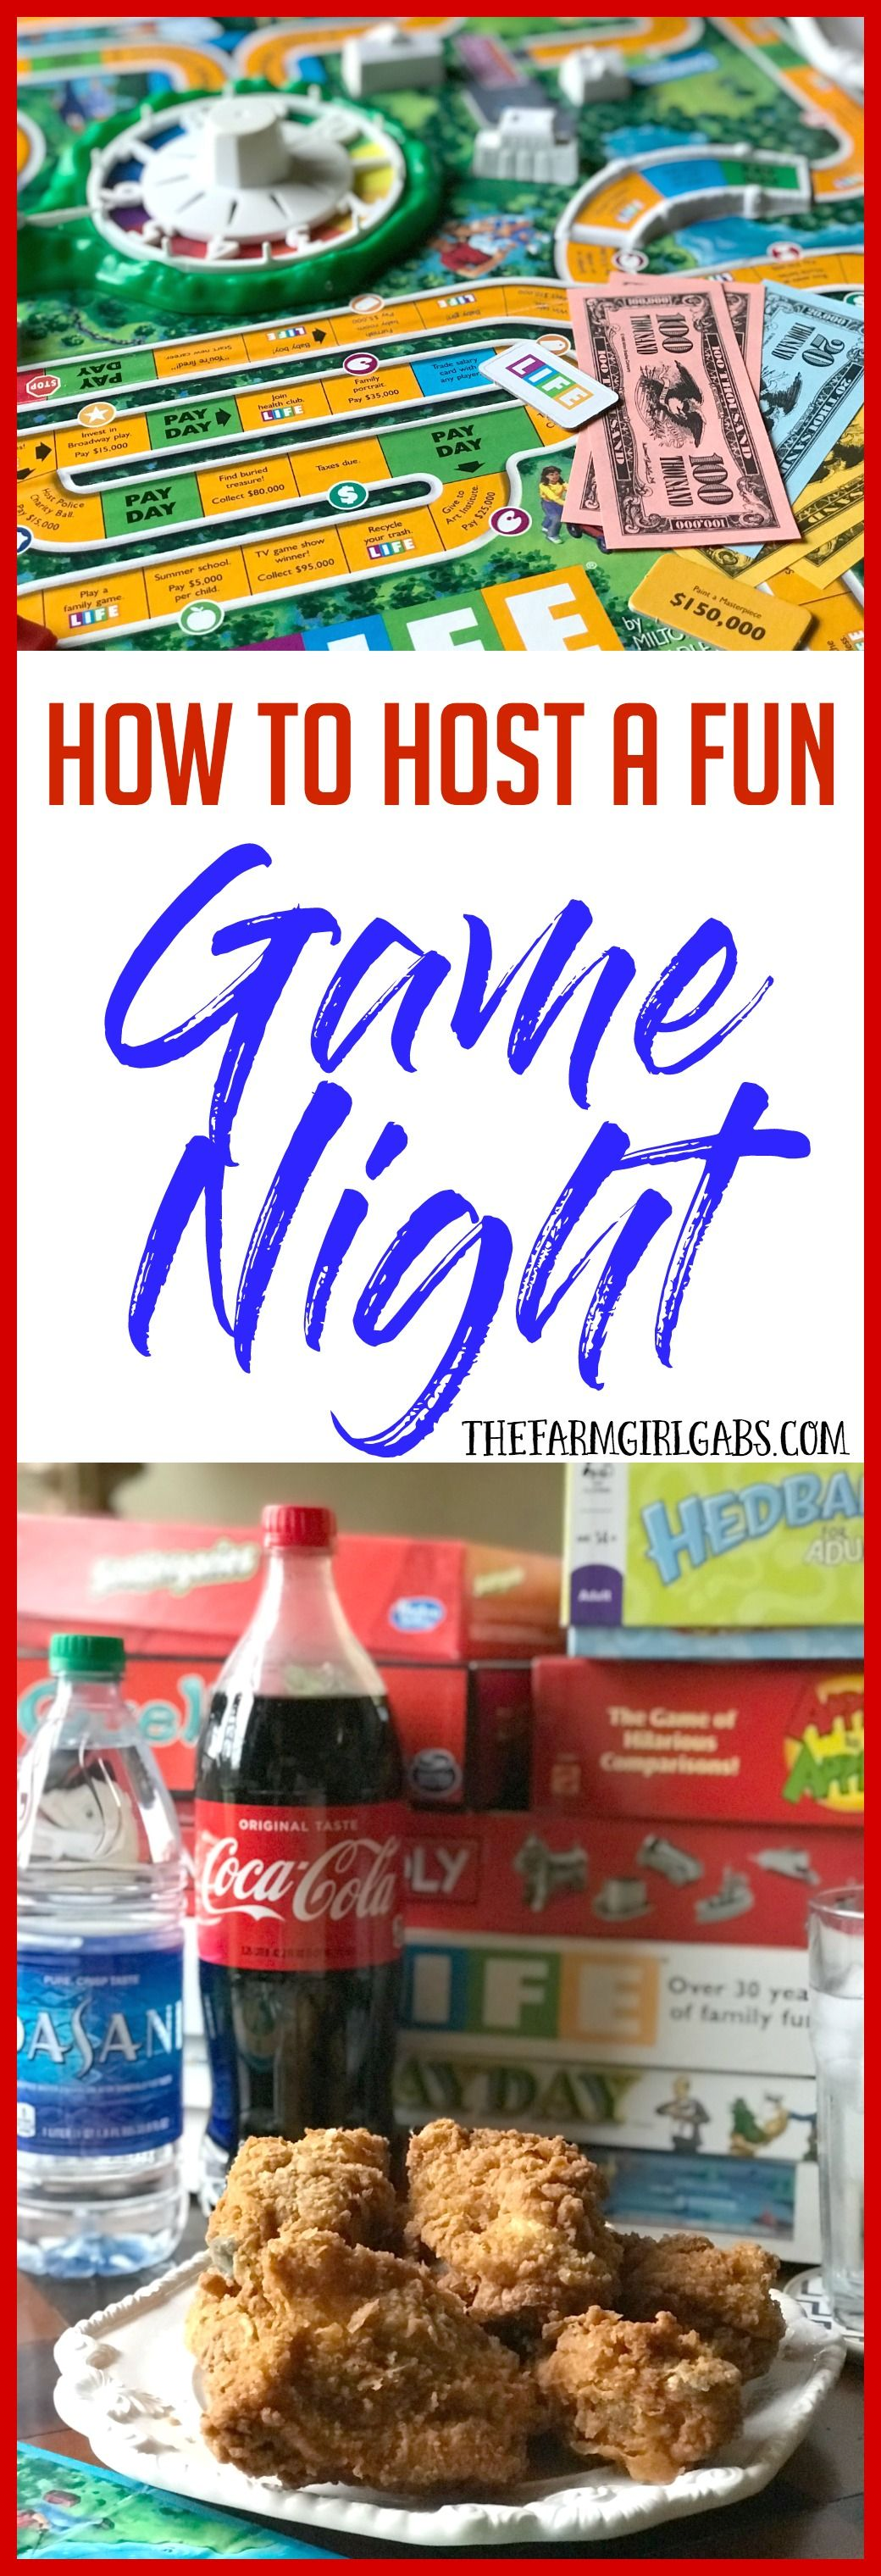 How To Host A Fun Game Night Party Game night parties